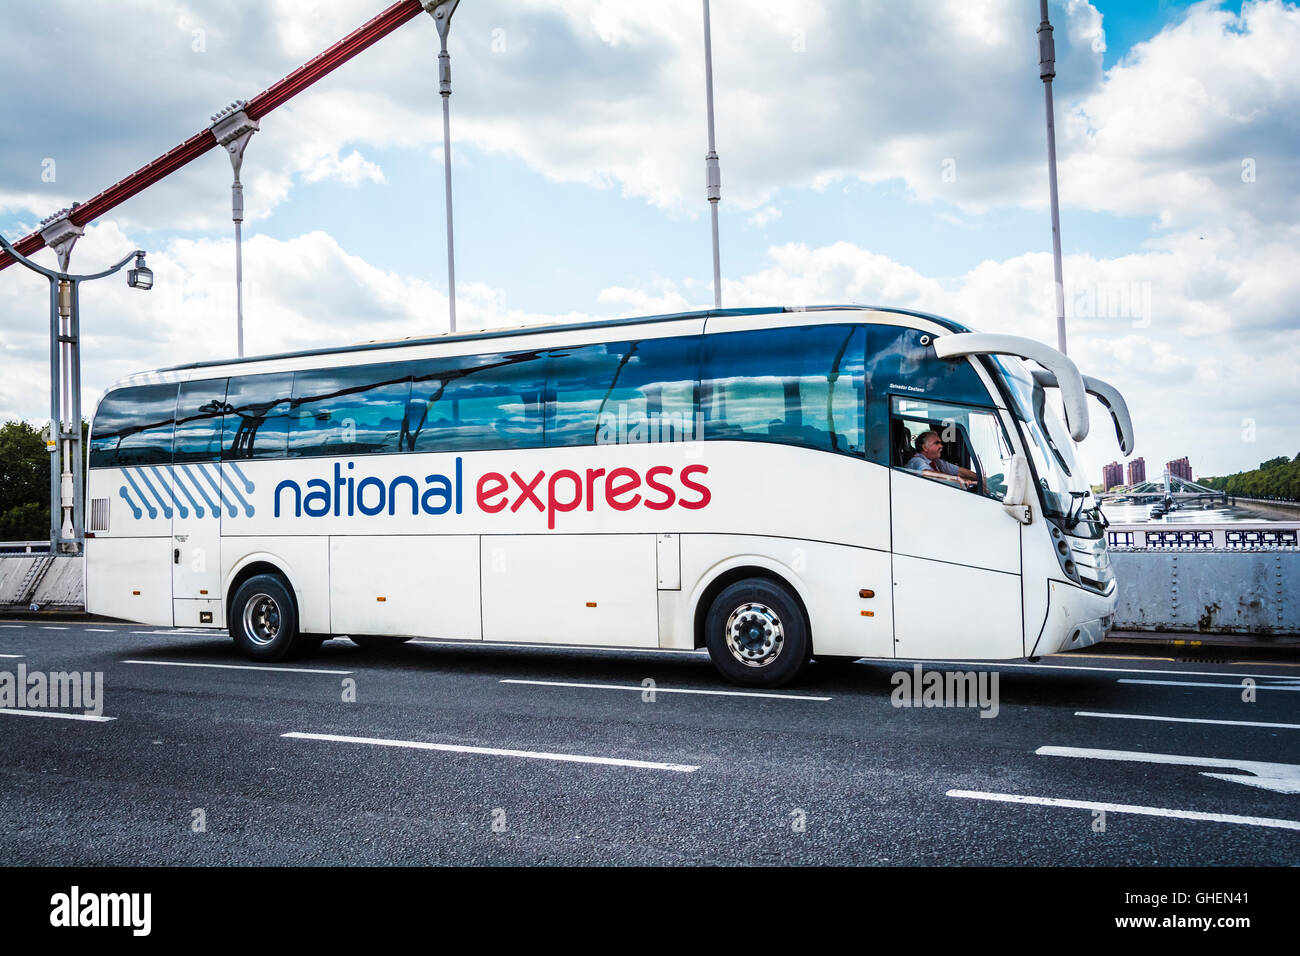 A National Express coach on the Albert Bridge in central London, UK Stock Photo